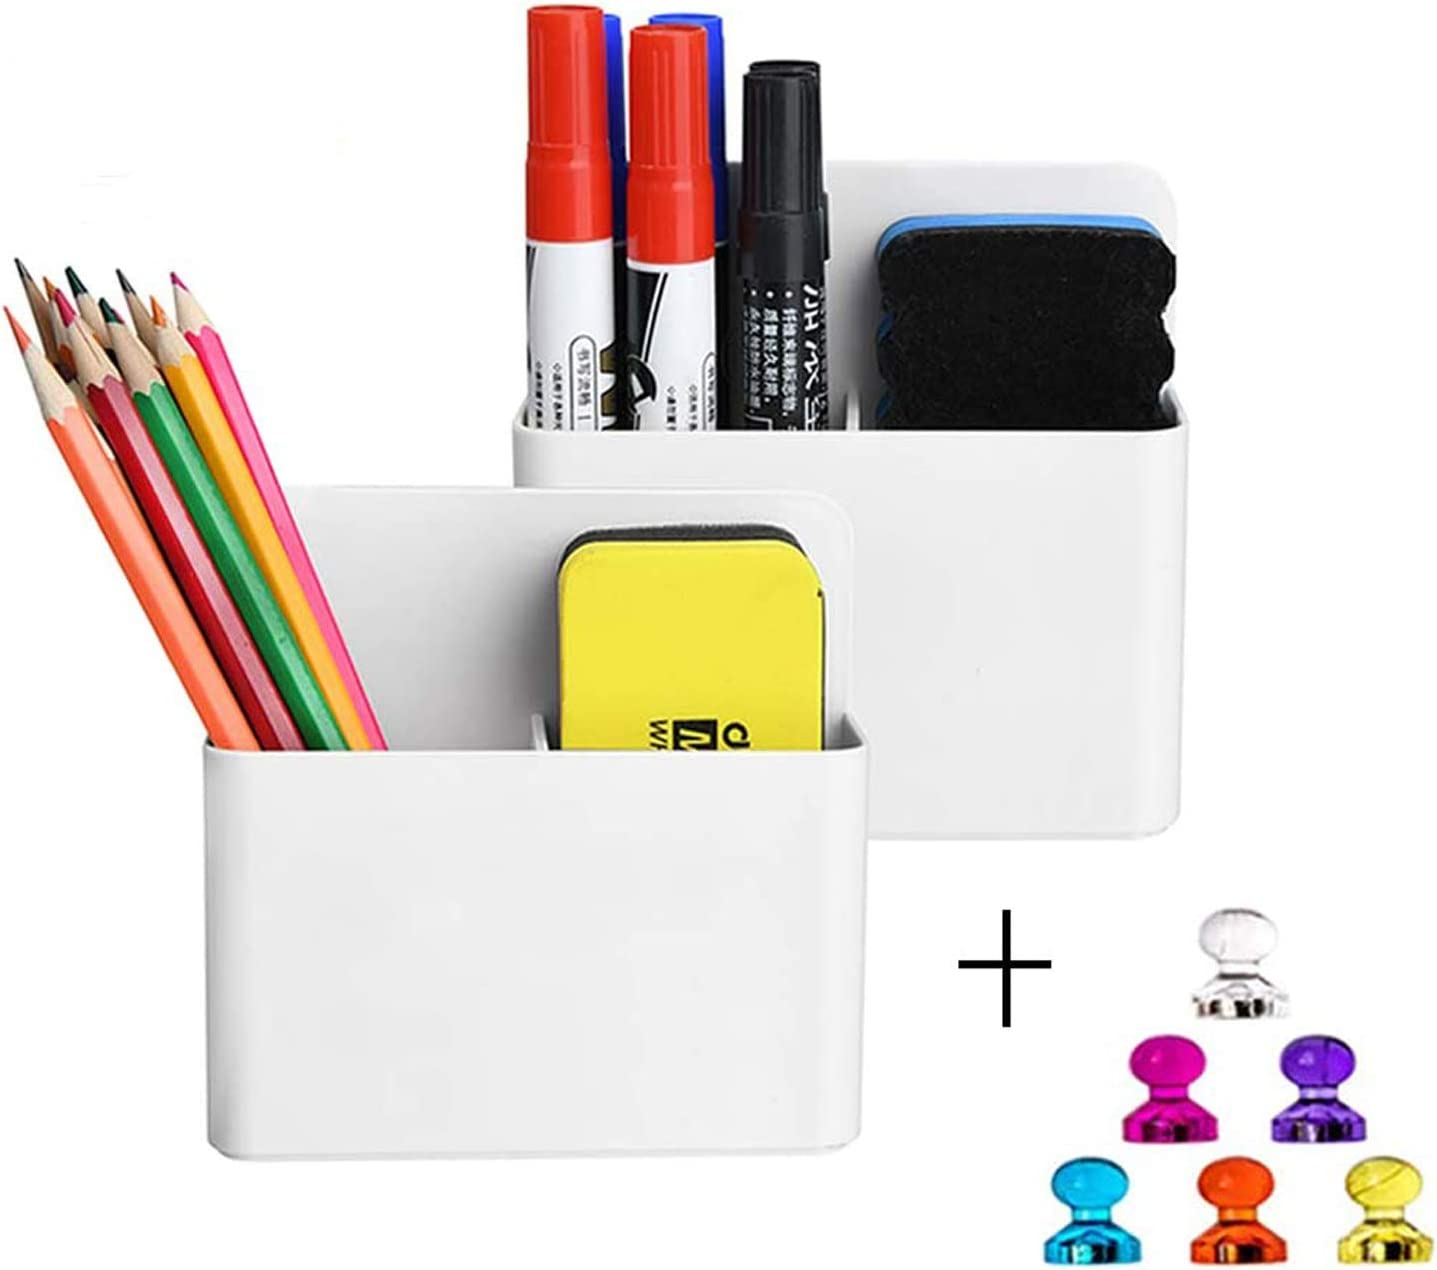 4 X Pen Pens Markers Dry for 4 Color Magnetic Whiteboard Eraser